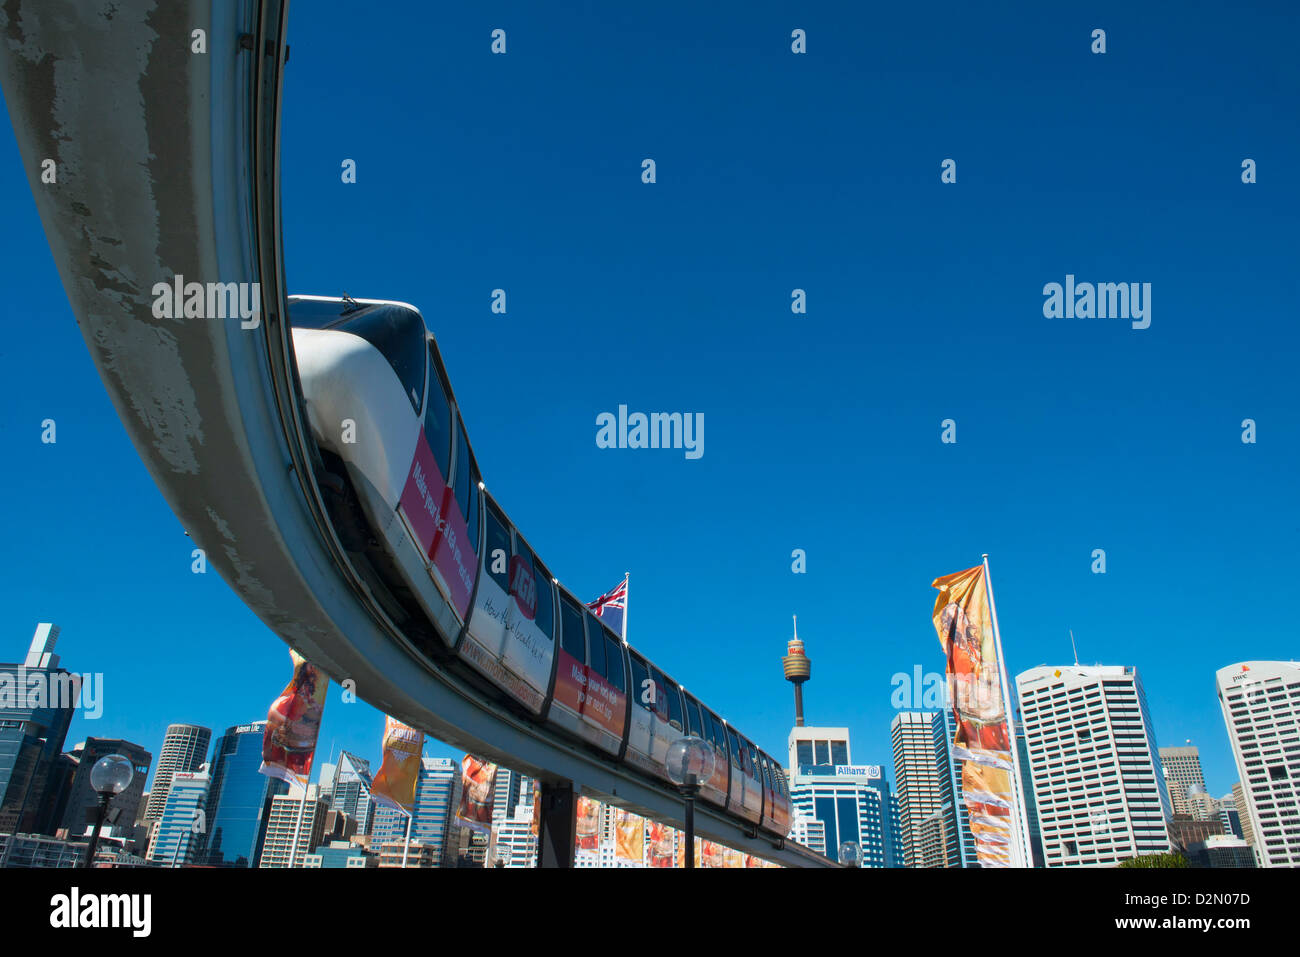 Monorail, Darling Harbour, Sydney, New South Wales, Australia, Pacific - Stock Image